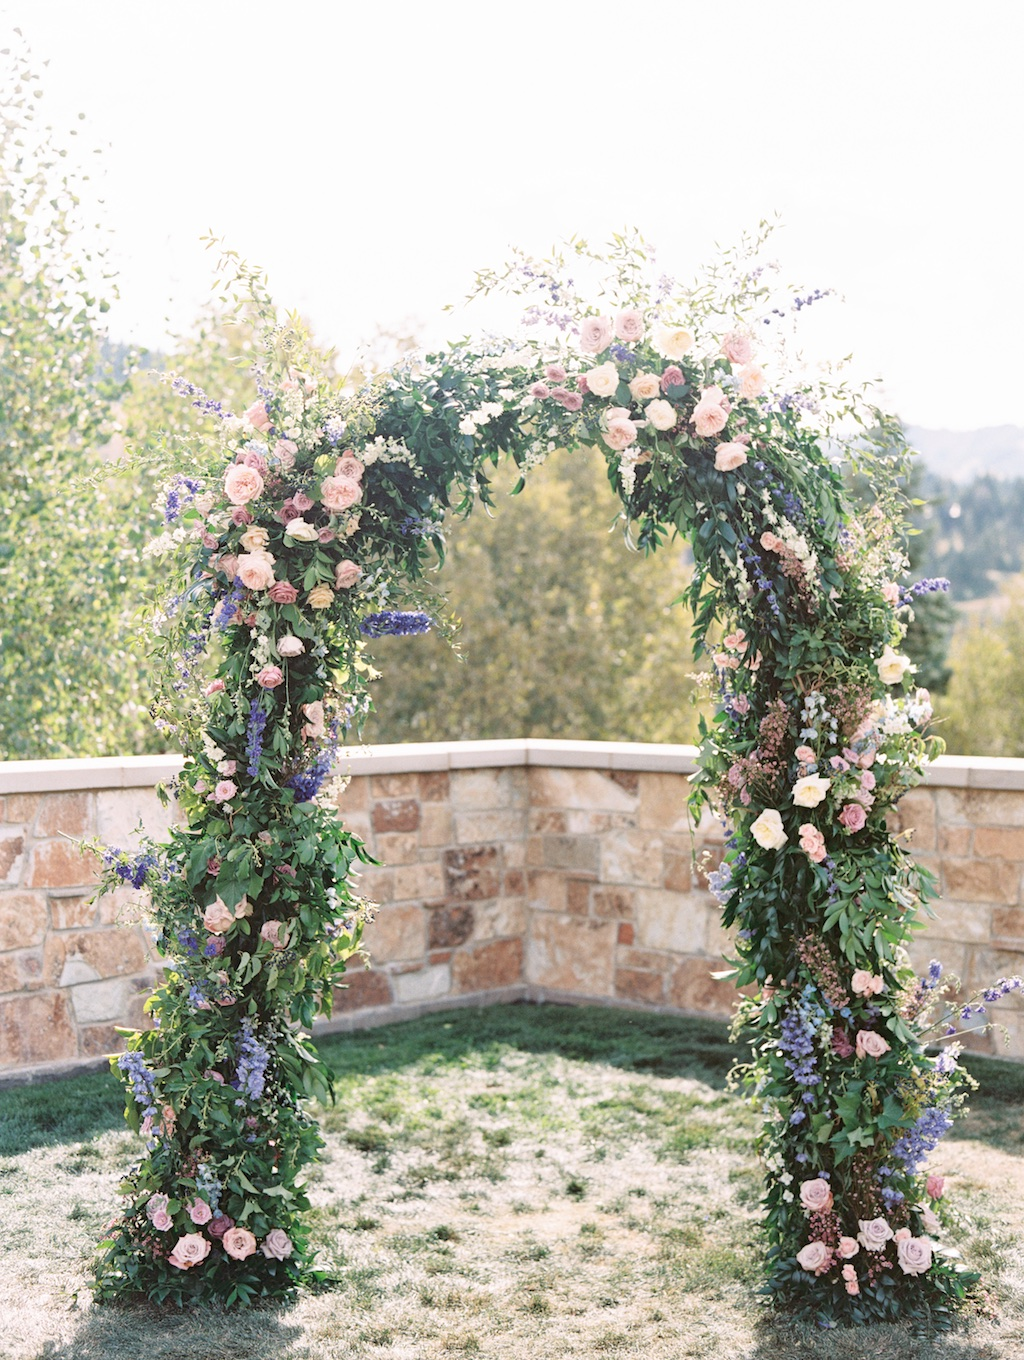 Ceremony flower arch, ceremony arches, beautiful flower arches, wedding ceremony flower arch ideas, Utah destination wedding, wedding flowers utah calie rose www.calierose.com